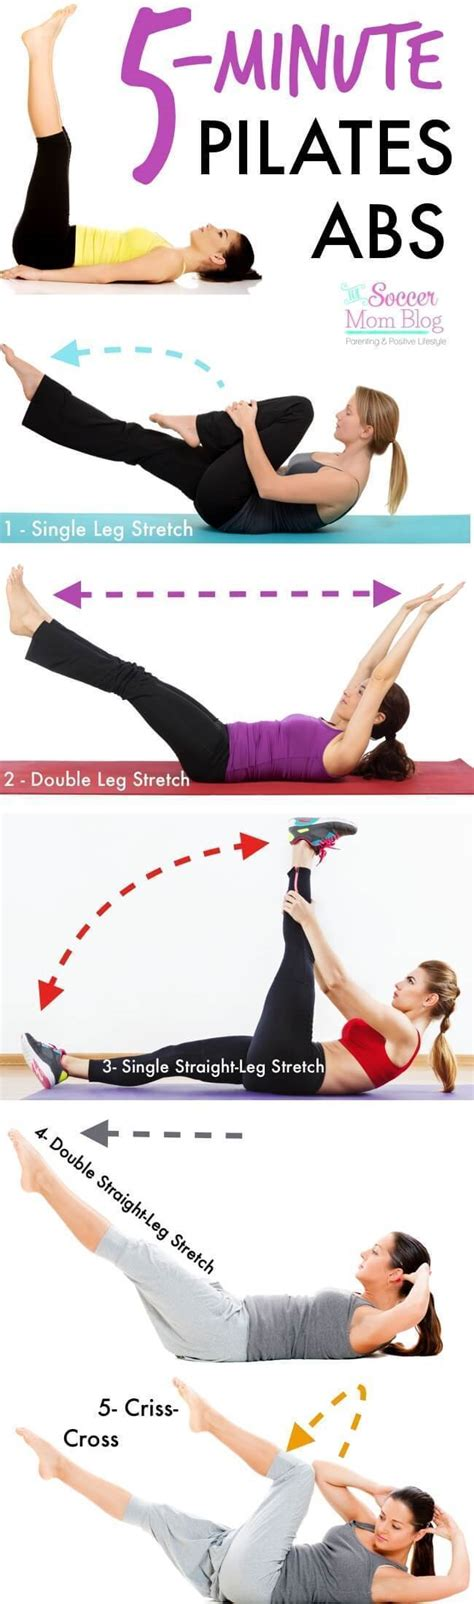 10 amazing 5 minute workouts to tone your abs inner thighs and arms bites